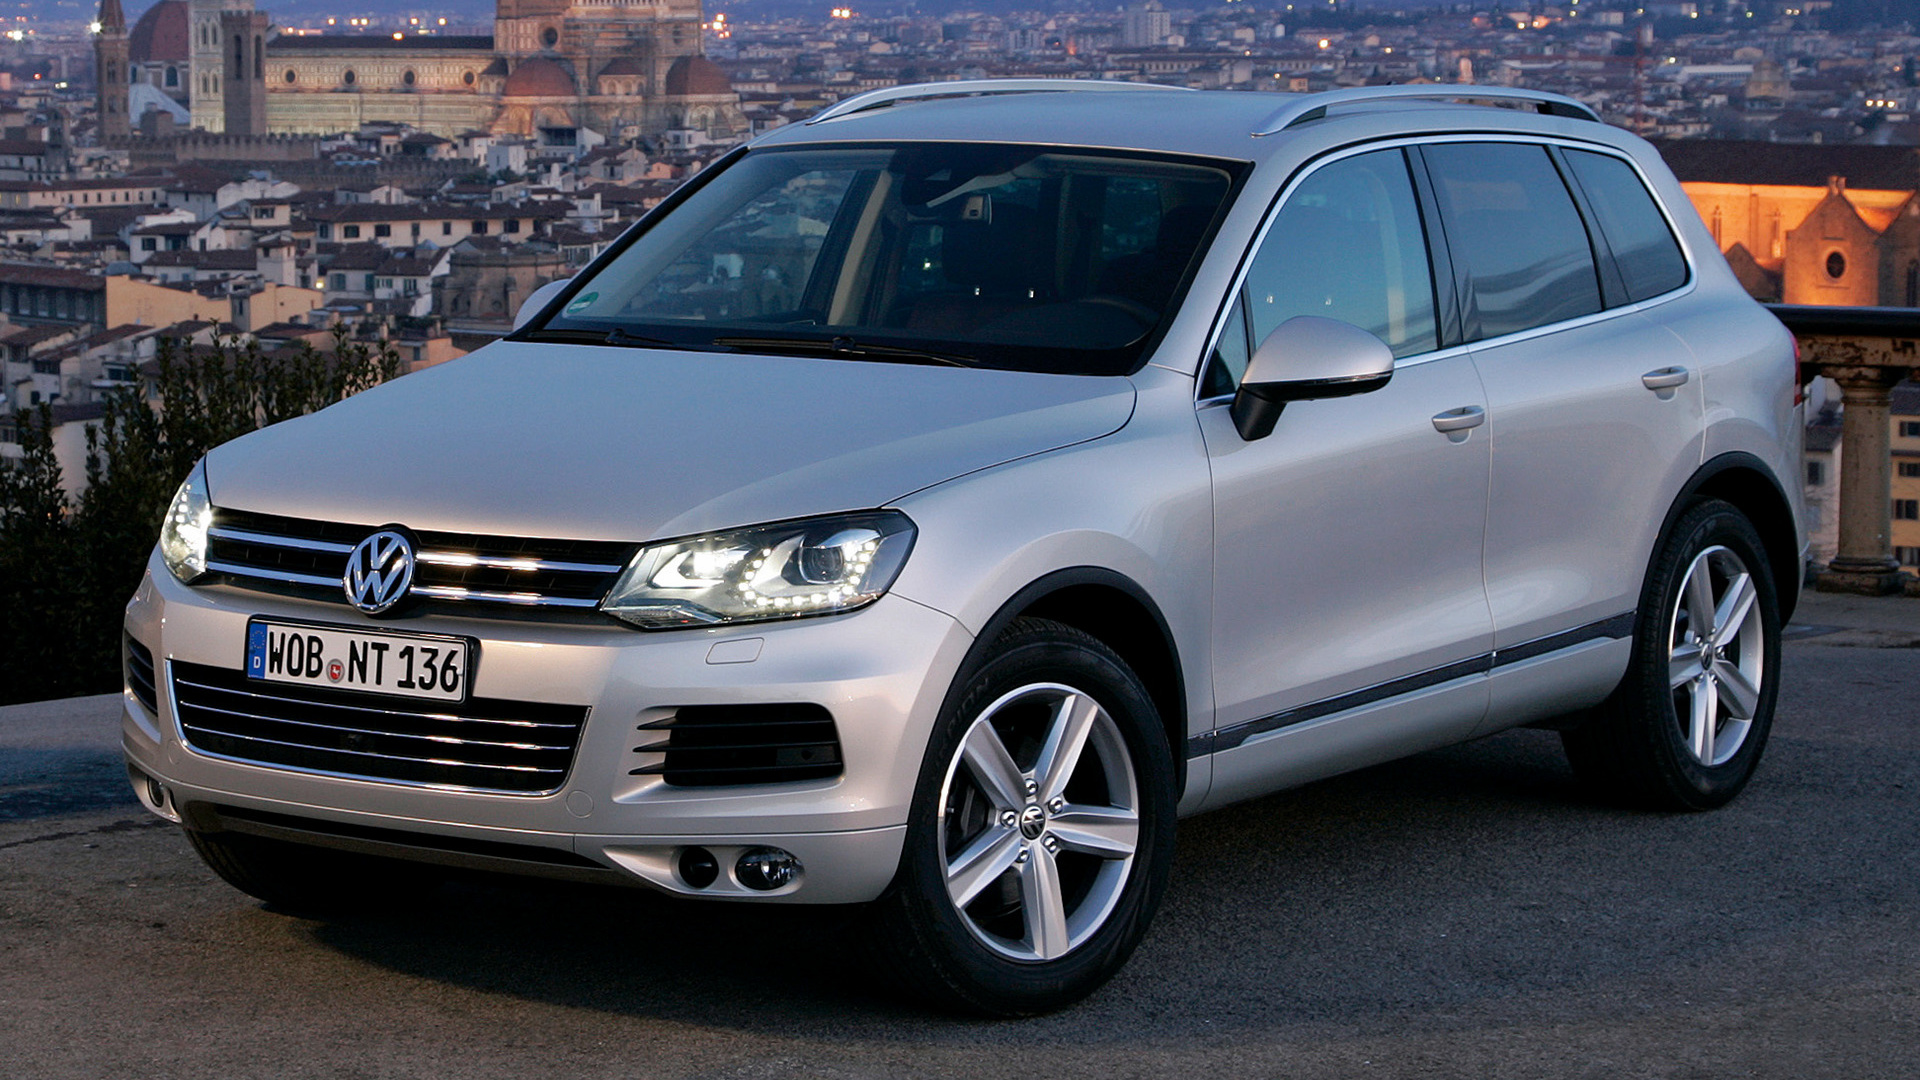 volkswagen touareg 2010 wallpapers and hd images car pixel. Black Bedroom Furniture Sets. Home Design Ideas